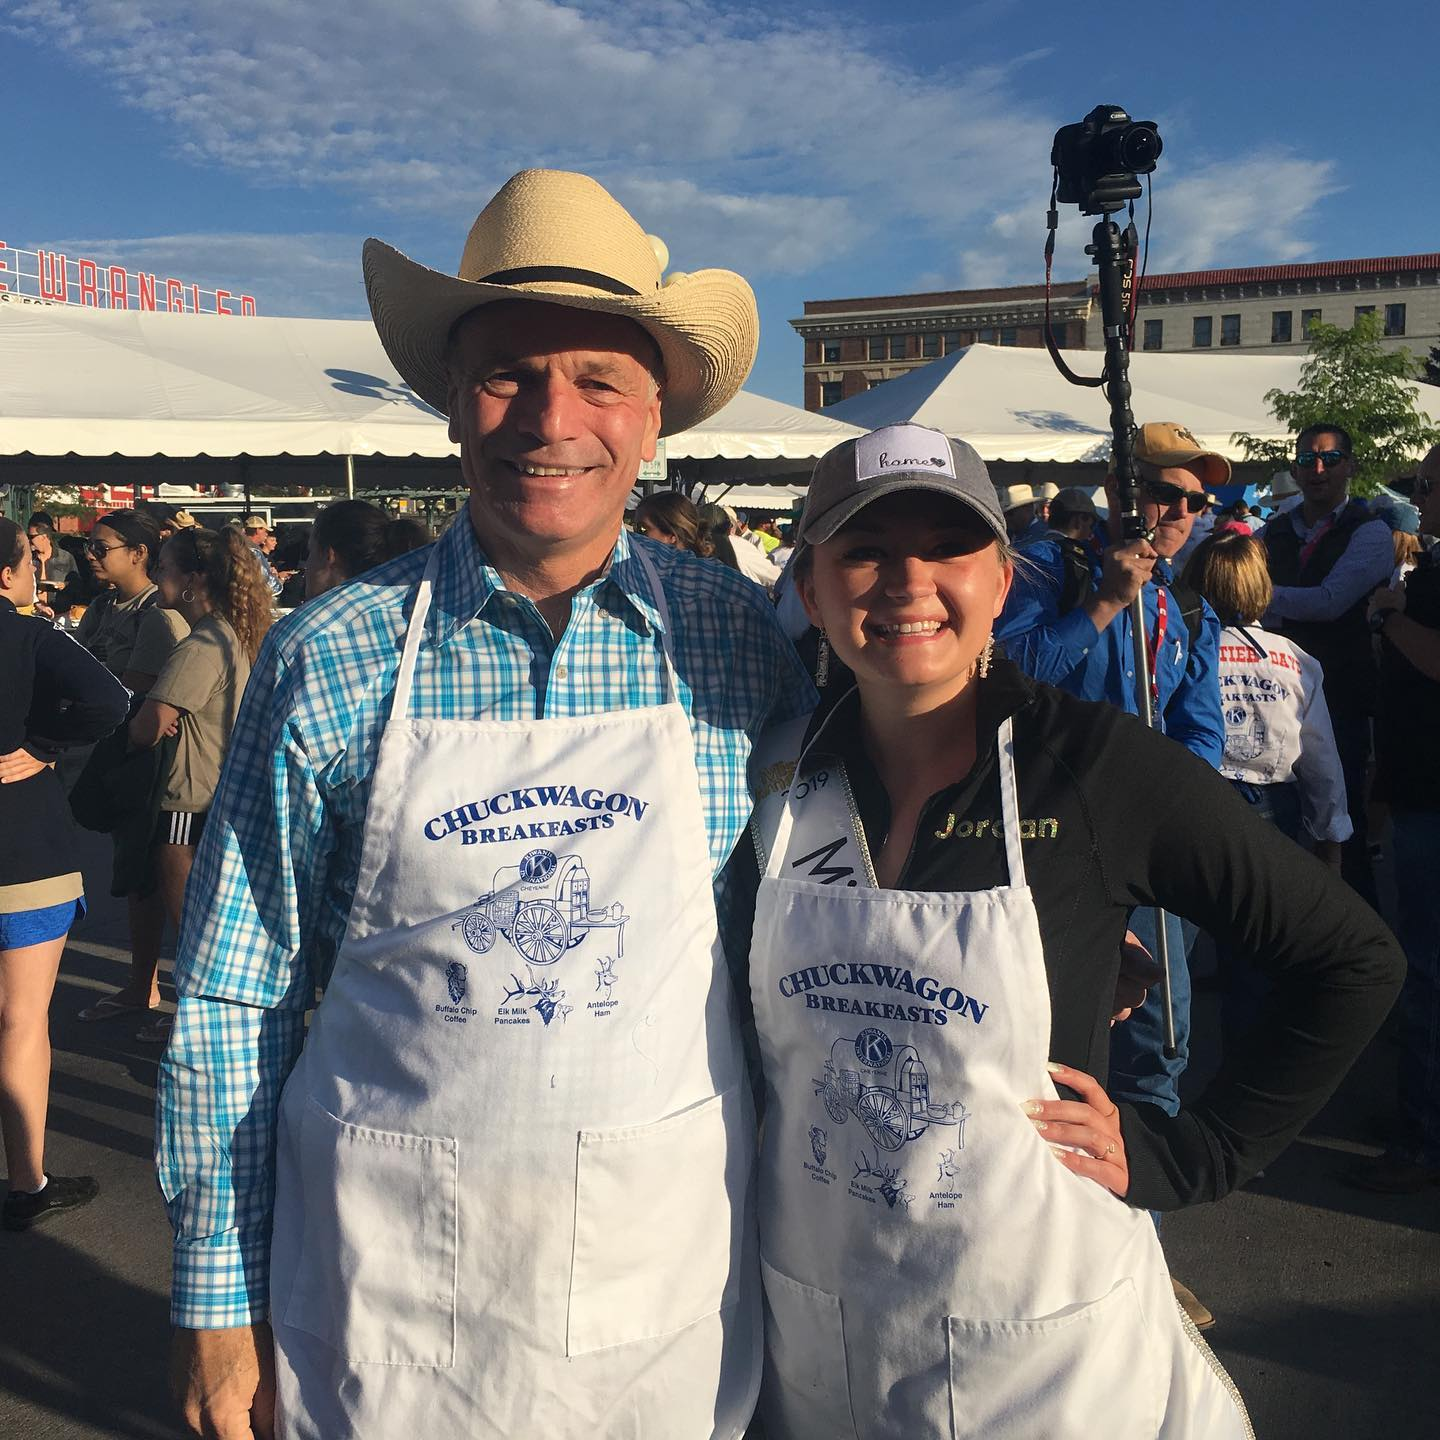 Jordan offering help with the annual Chuckwagon breakfast at the 2019 Cheyenne Frontier Days with Wyoming's Governor, Mark Gordon.